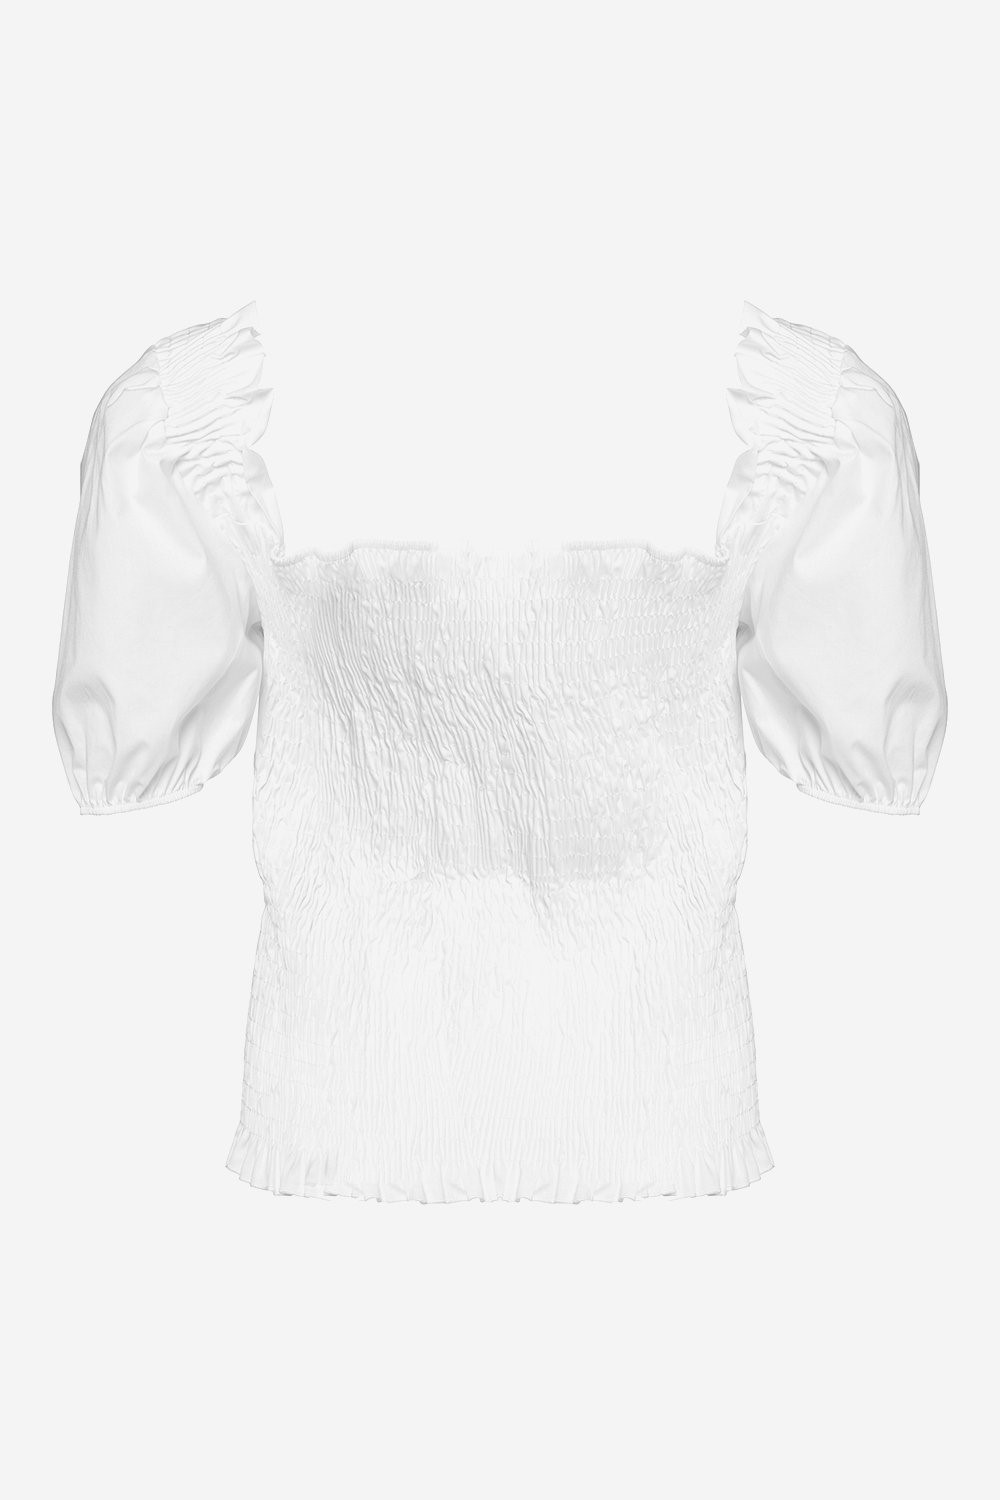 BODY BLOUSE WHITE - NOELLA